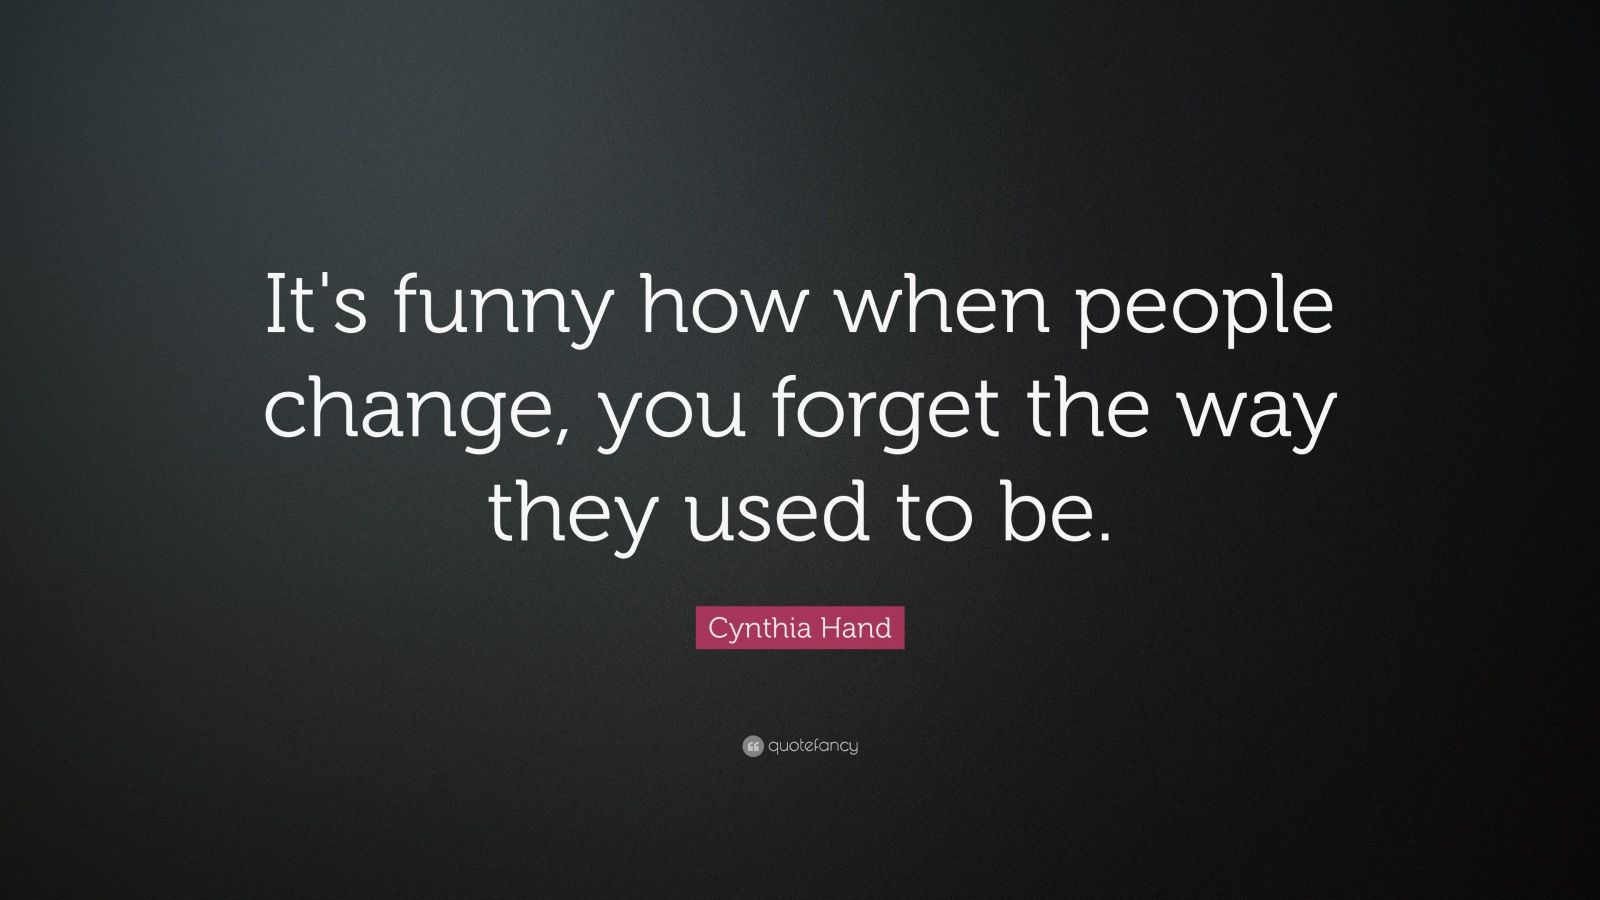 Funny Quotes About Change And Love : Its funny how when people change, you forget the way they used to be ...